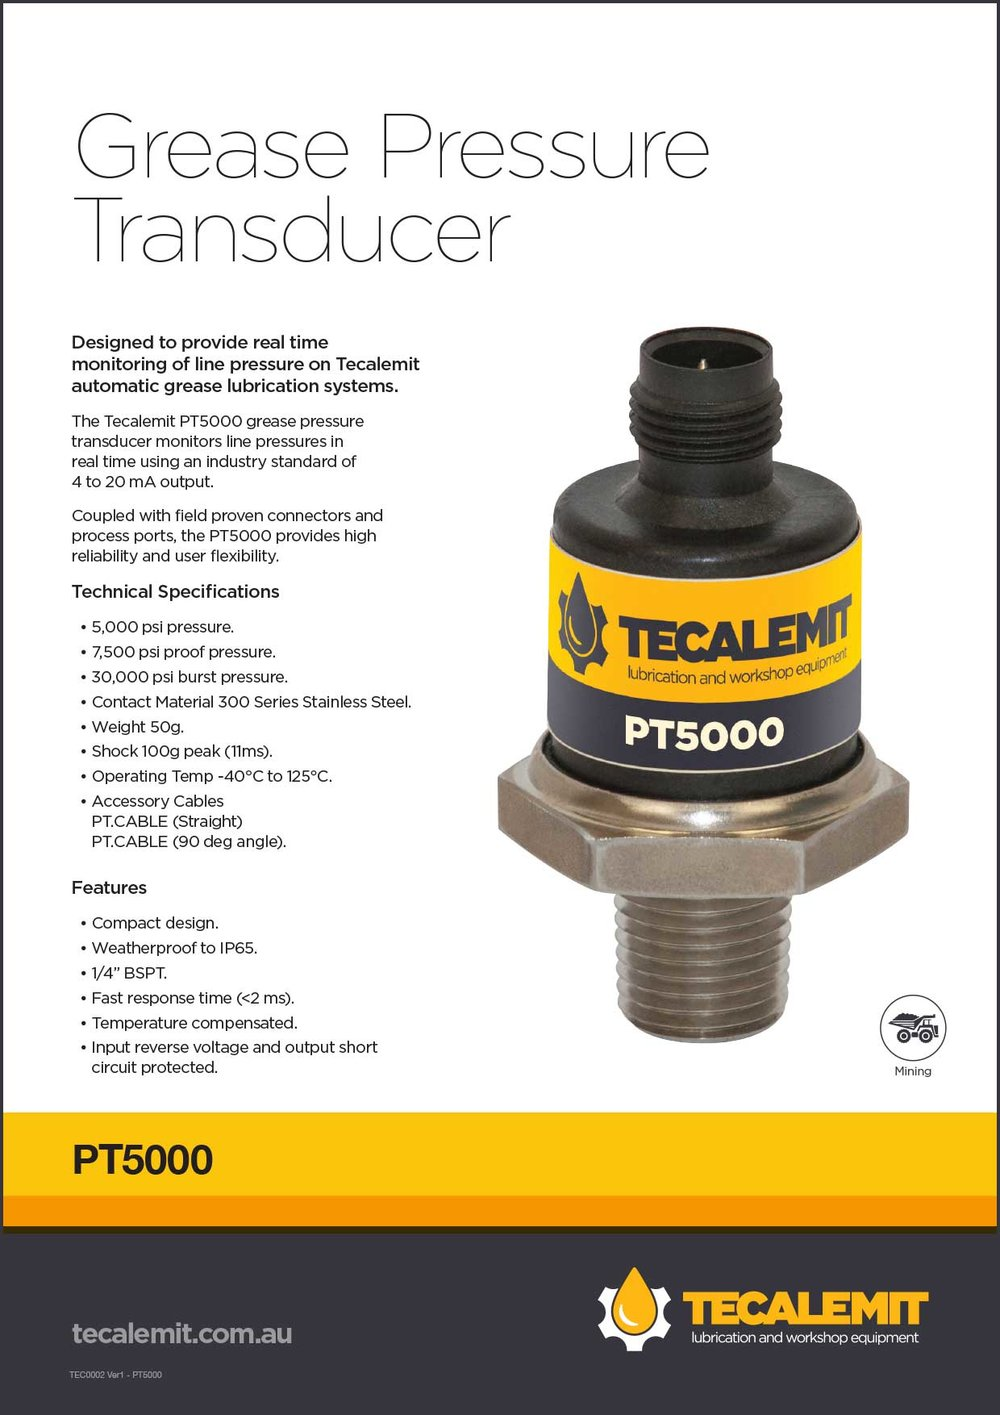 PT5000 Product Info